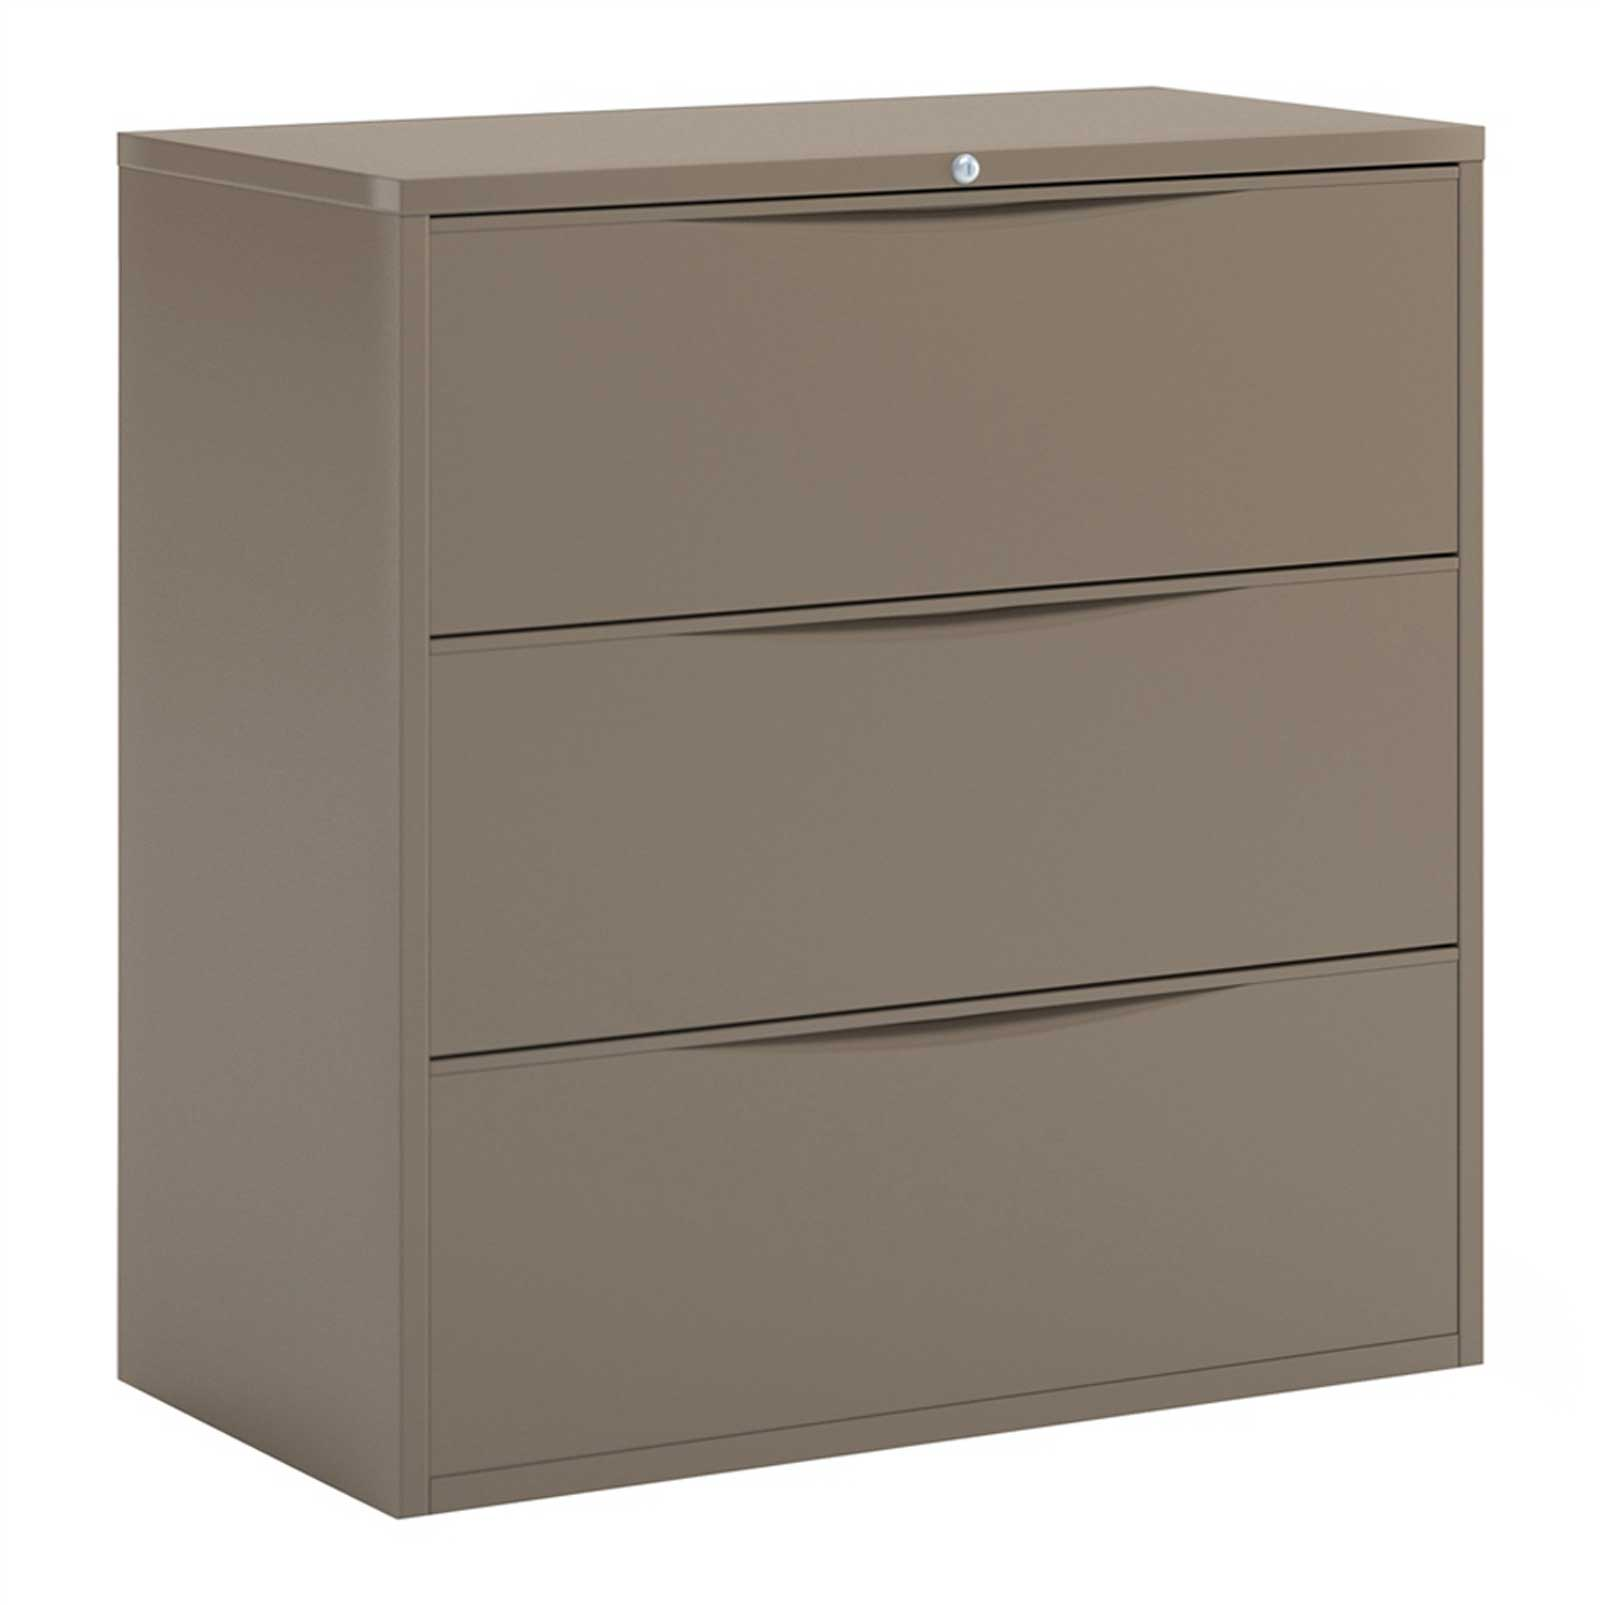 Horizontal File Cabinets Advantages